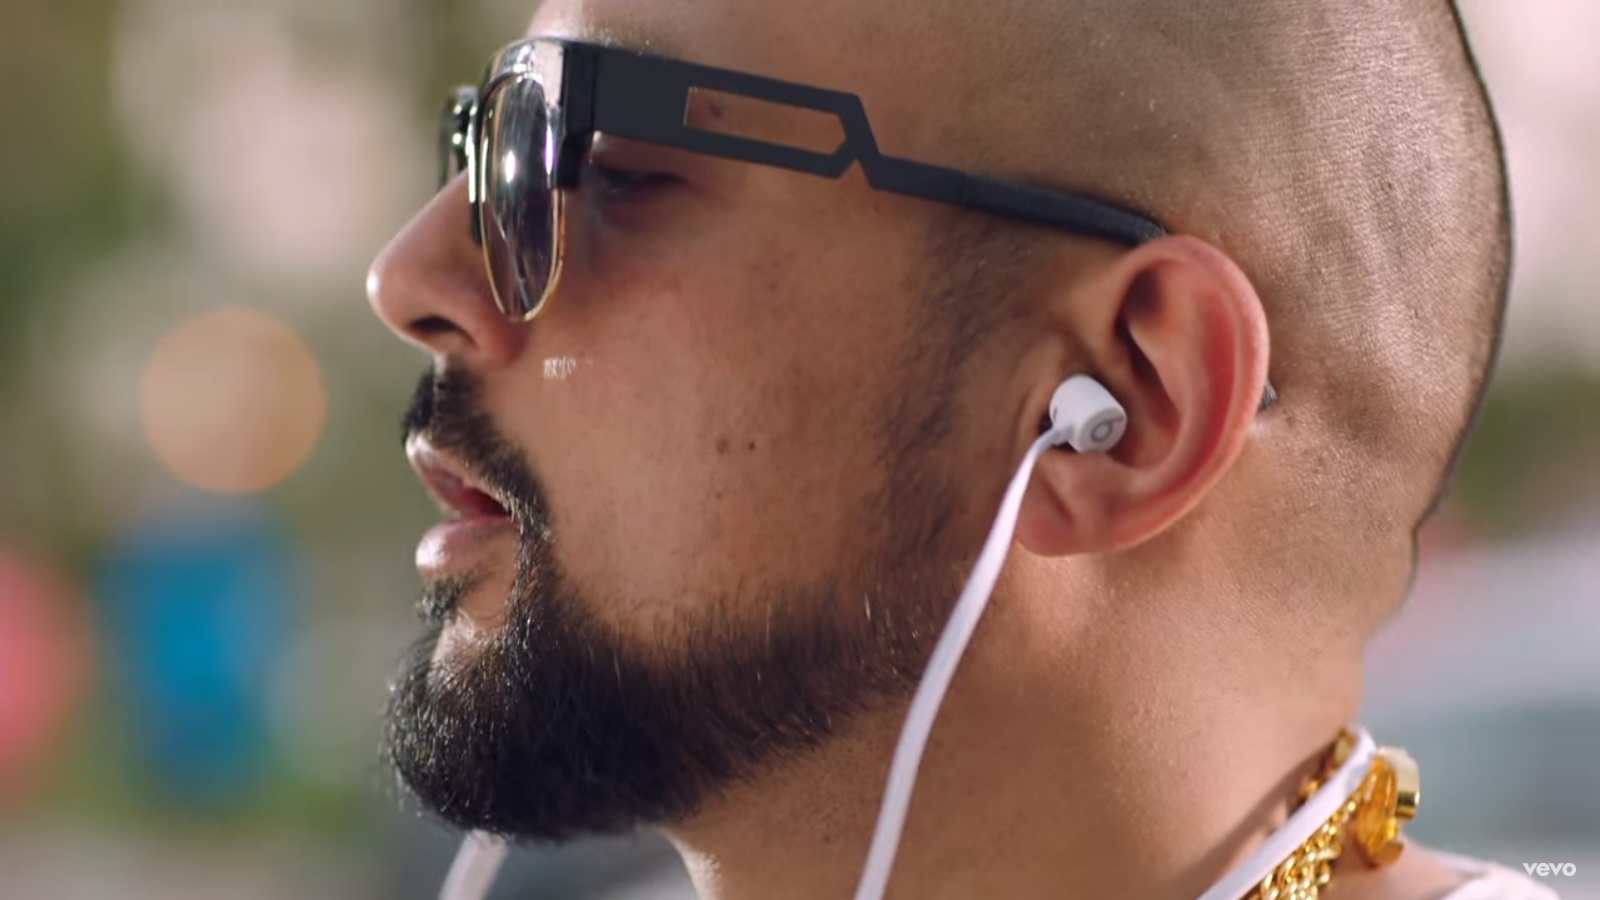 Beats Earphones - Sean Paul - Body ft. Migos - Official Music Video Product Placement